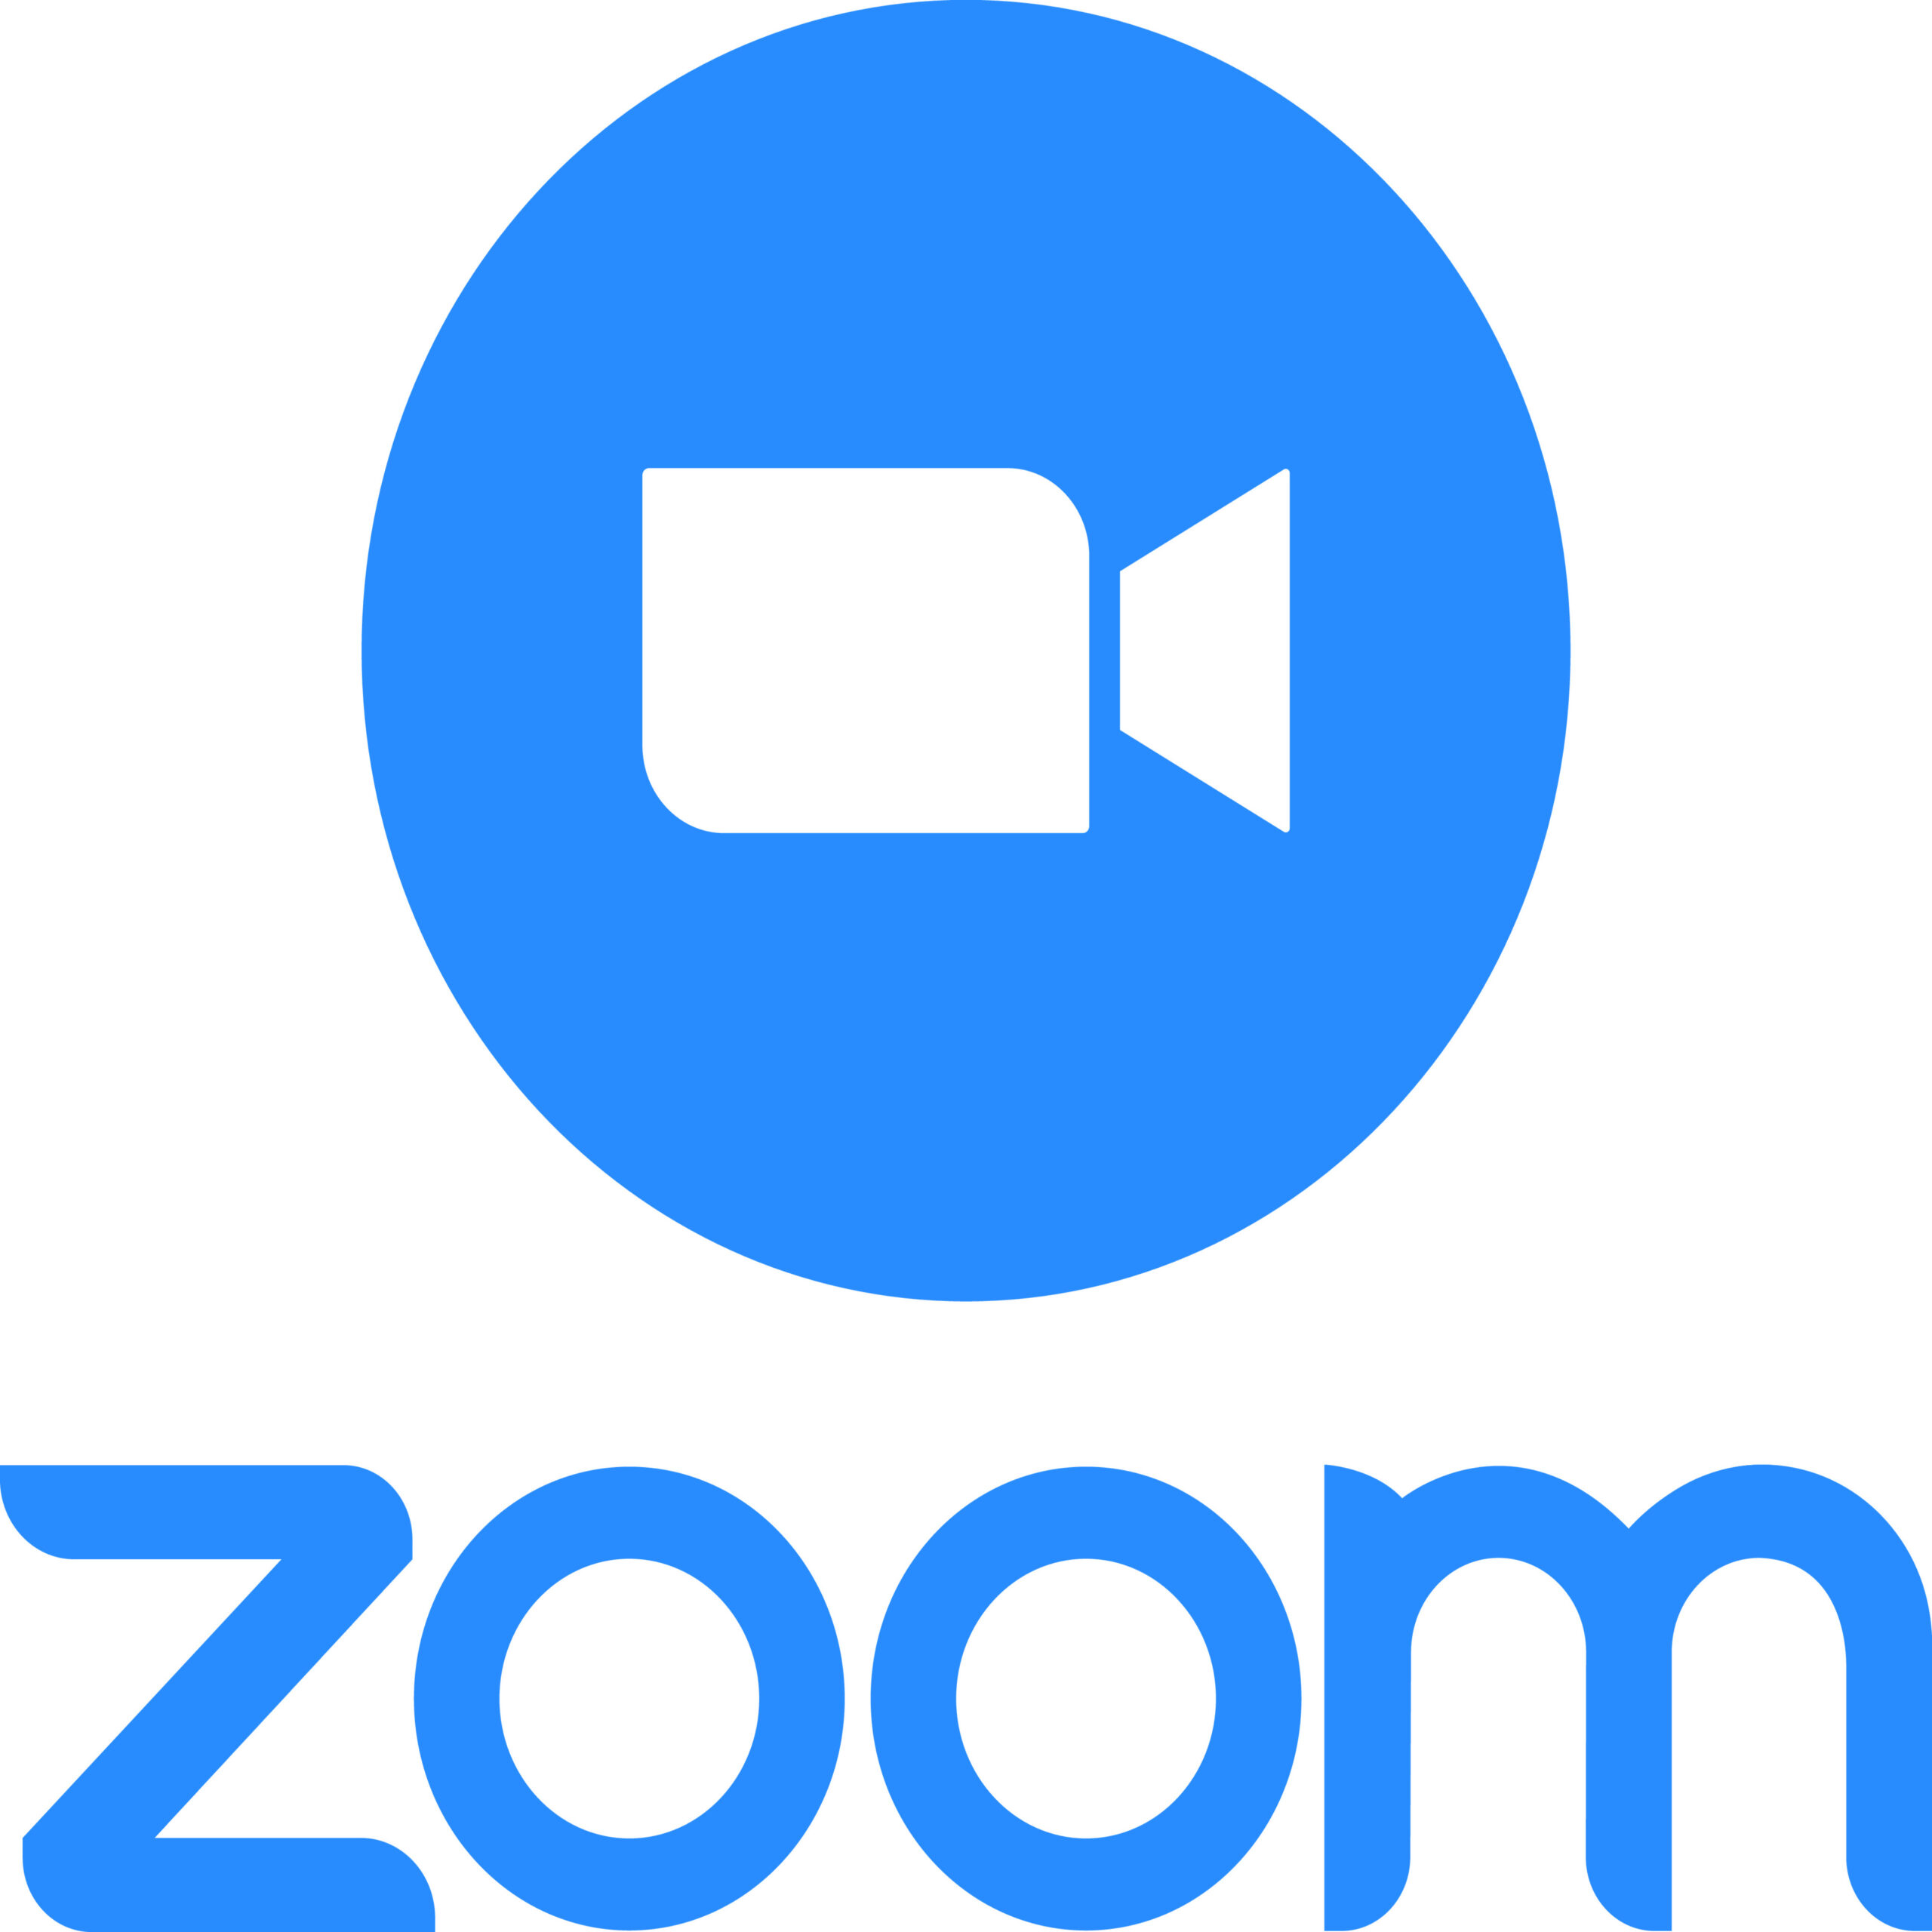 Zoom Video Communications. Zoom logo. Application for video communications with cloud platform for video and audio conferencing, chat, and webinars. Blue camera icon. Kyiv, Ukraine - June 8, 2020